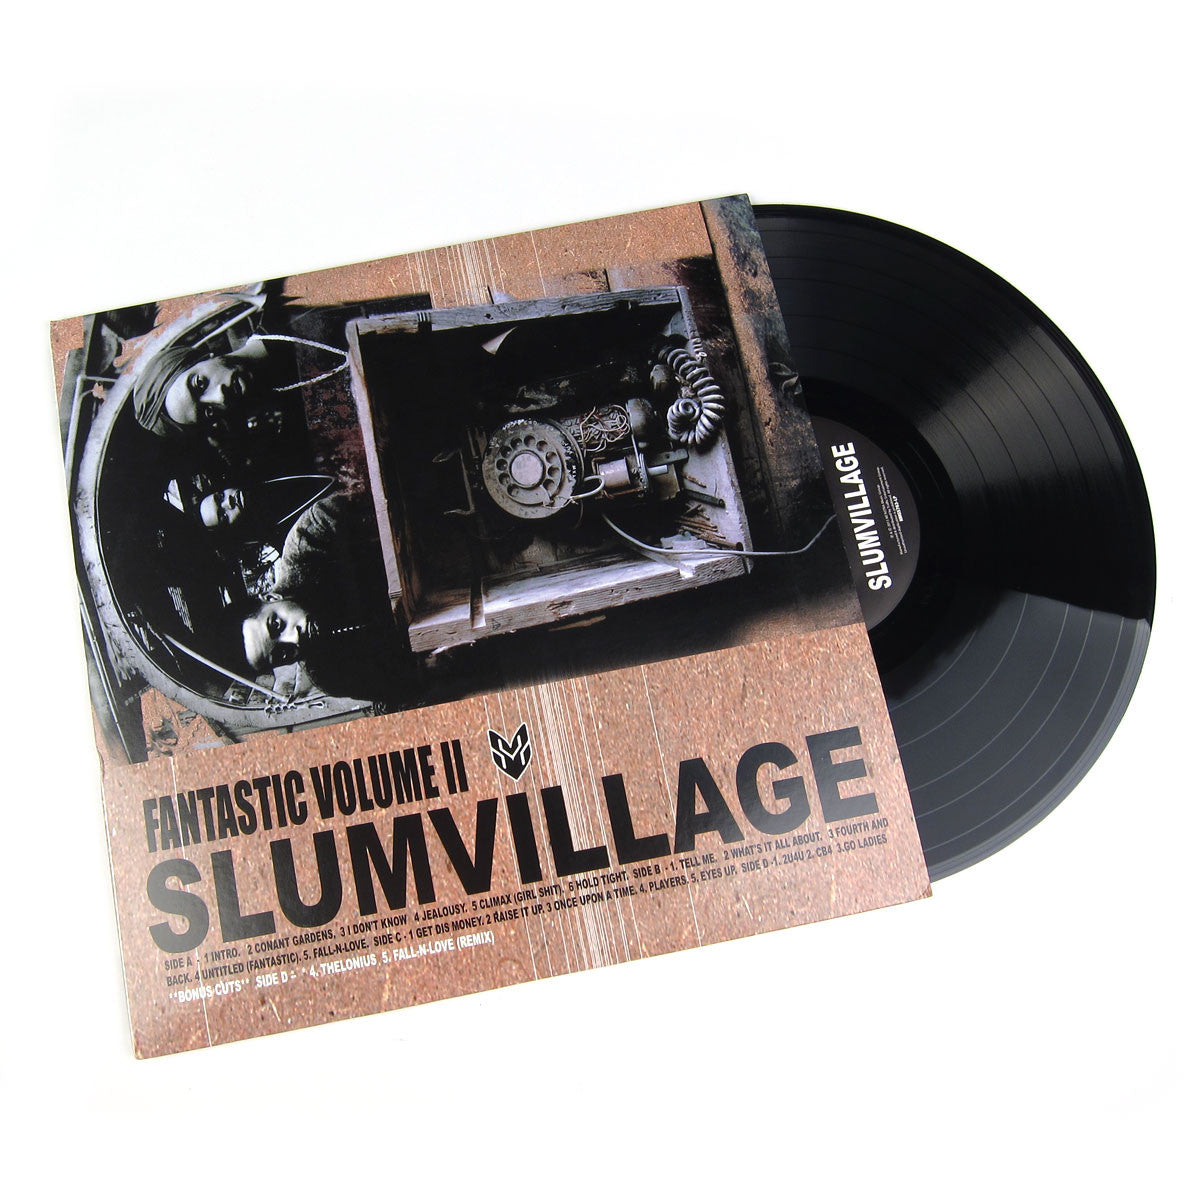 So much drama surrounded Slum Village's debut album: first they were dropped from Interscope, then Vol. 2 was released as a Euro import/boot, then they were picked up by Goodvibe, which put it out officially but later folded. The music was no less controversial - Swizz Beats keyboards were the rule and heads weren't ready for the loose, soulful beats and lazy rhyme styles. Jay Dee is an undeniably brilliant producer, and heat rises - Fantastic Vol. 2 is now widely regarded as a cornerstone of the Soulquaria